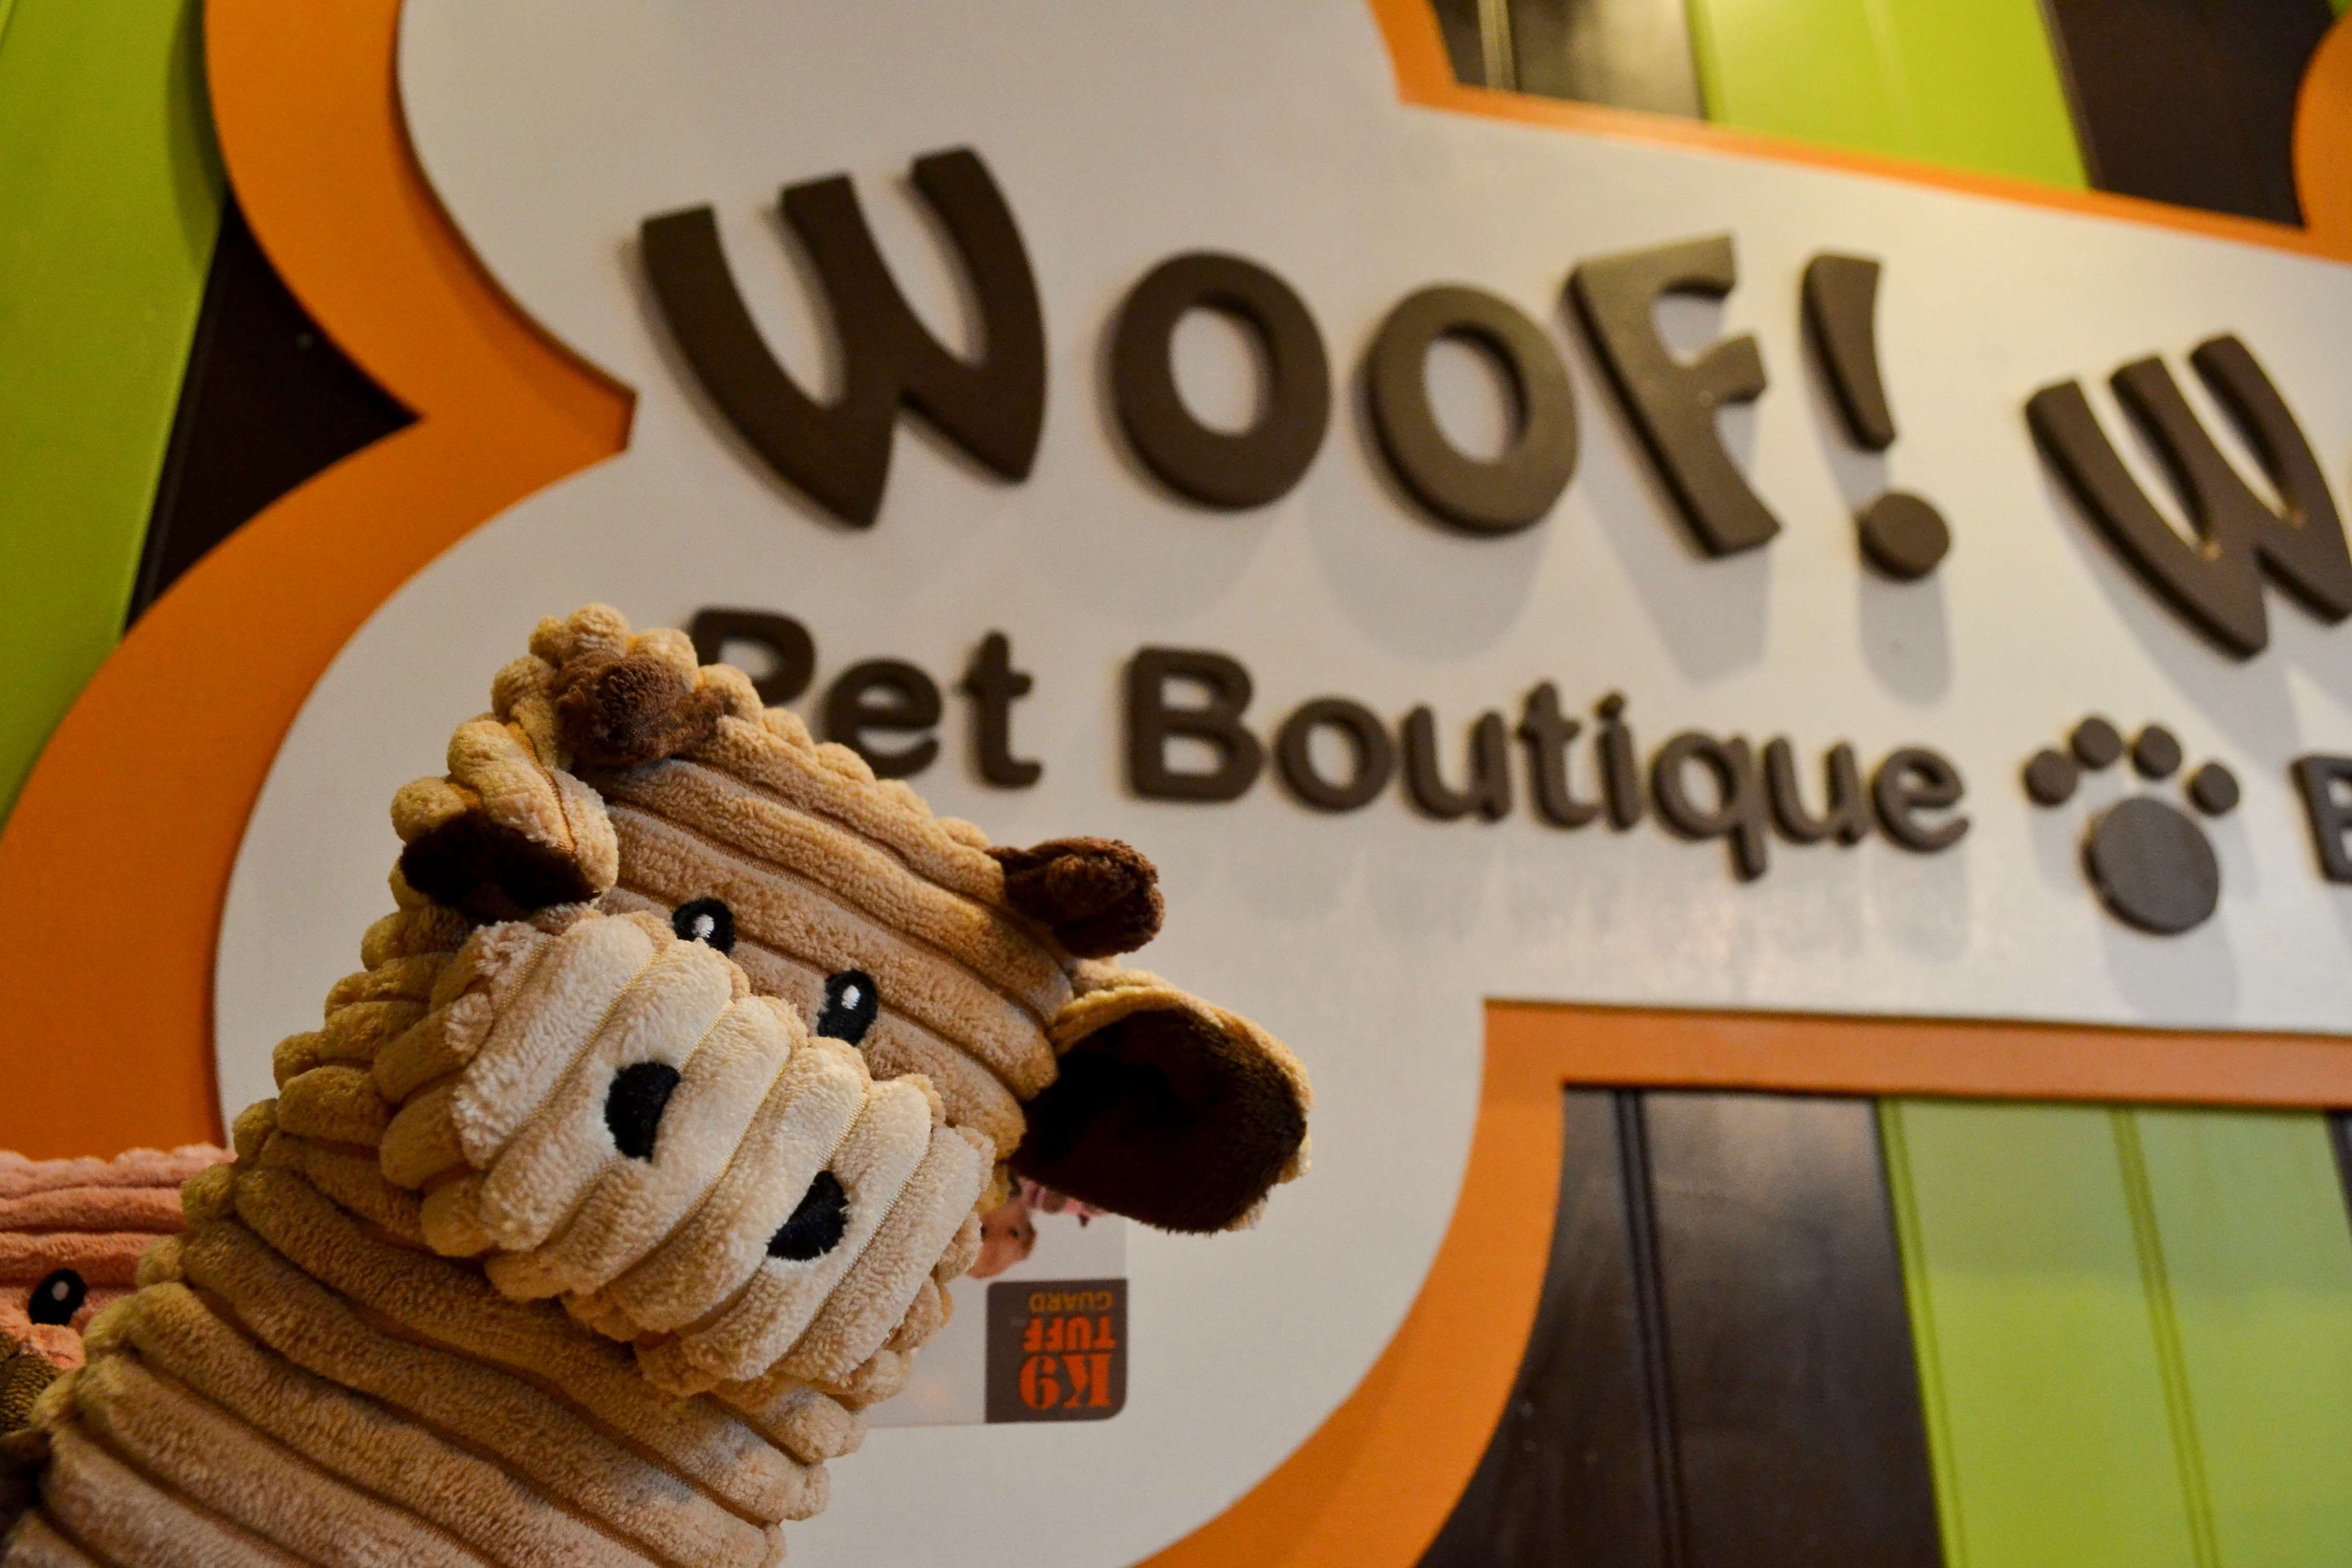 WOOF! WOOF! Pet Boutique & Biscuit Bar